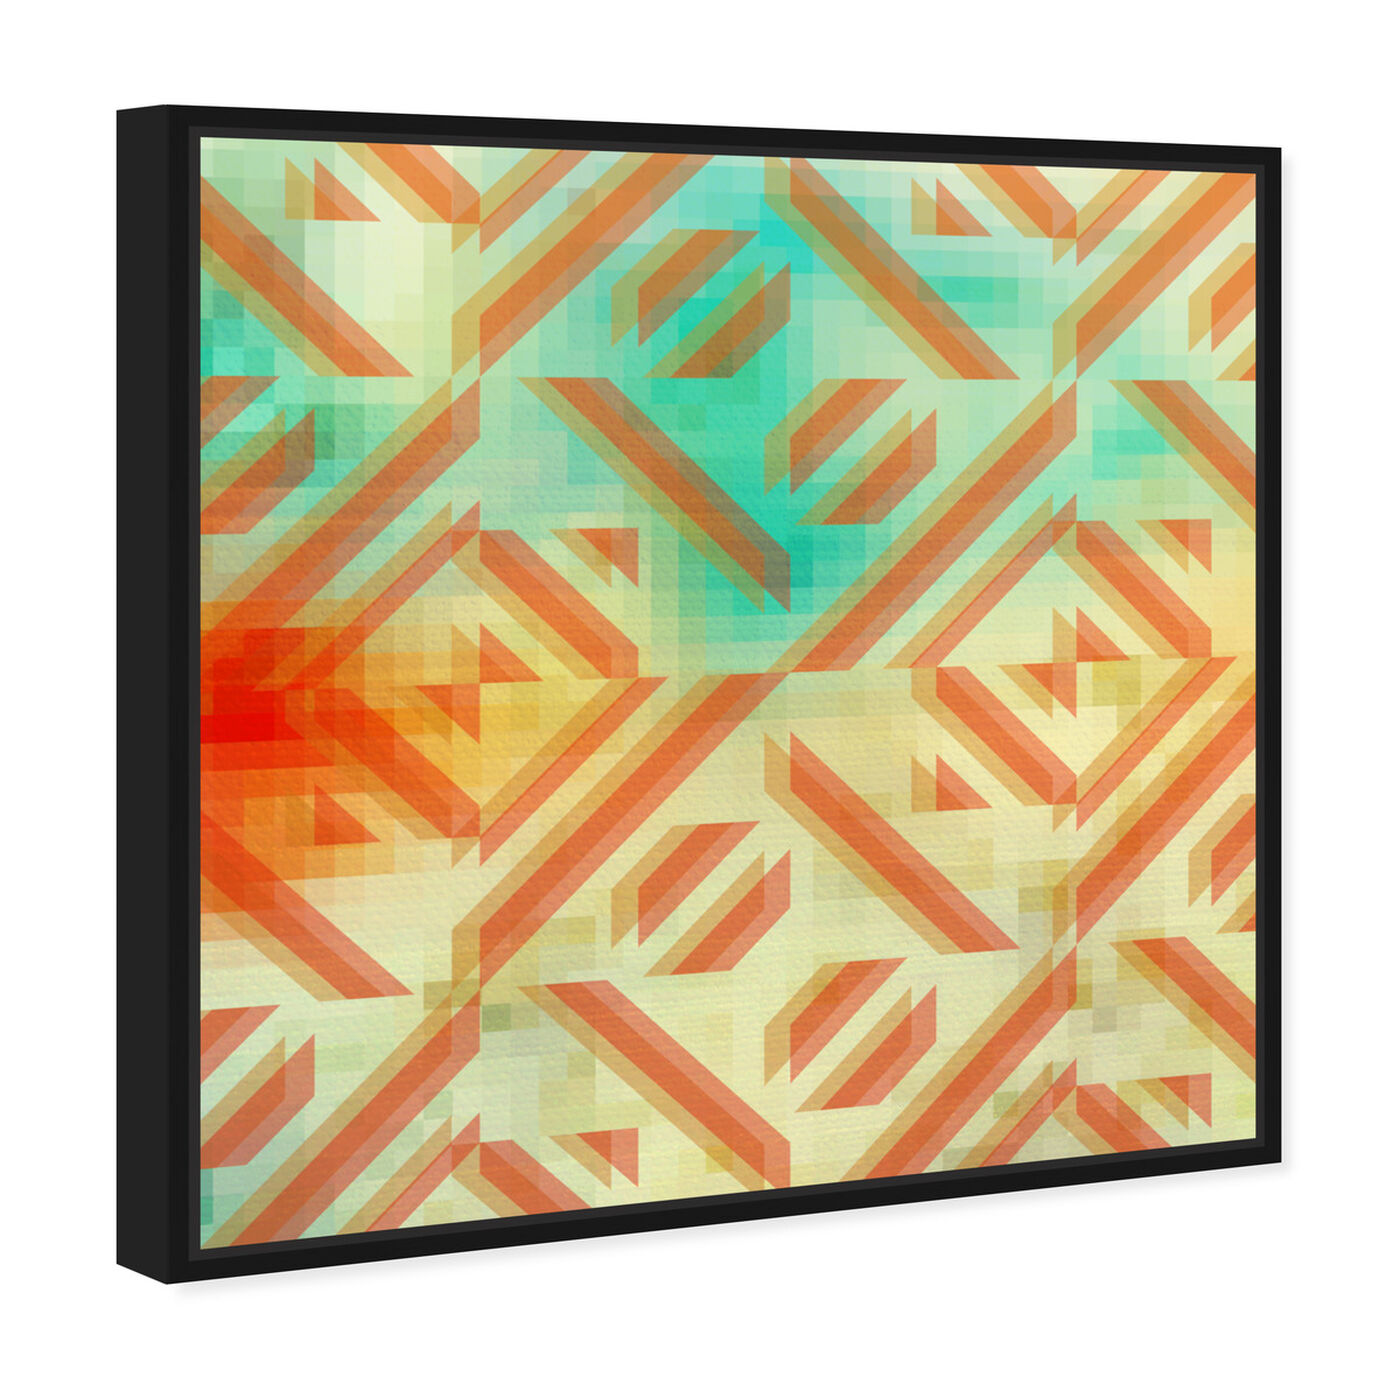 Angled view of Gaze featuring abstract and geometric art.